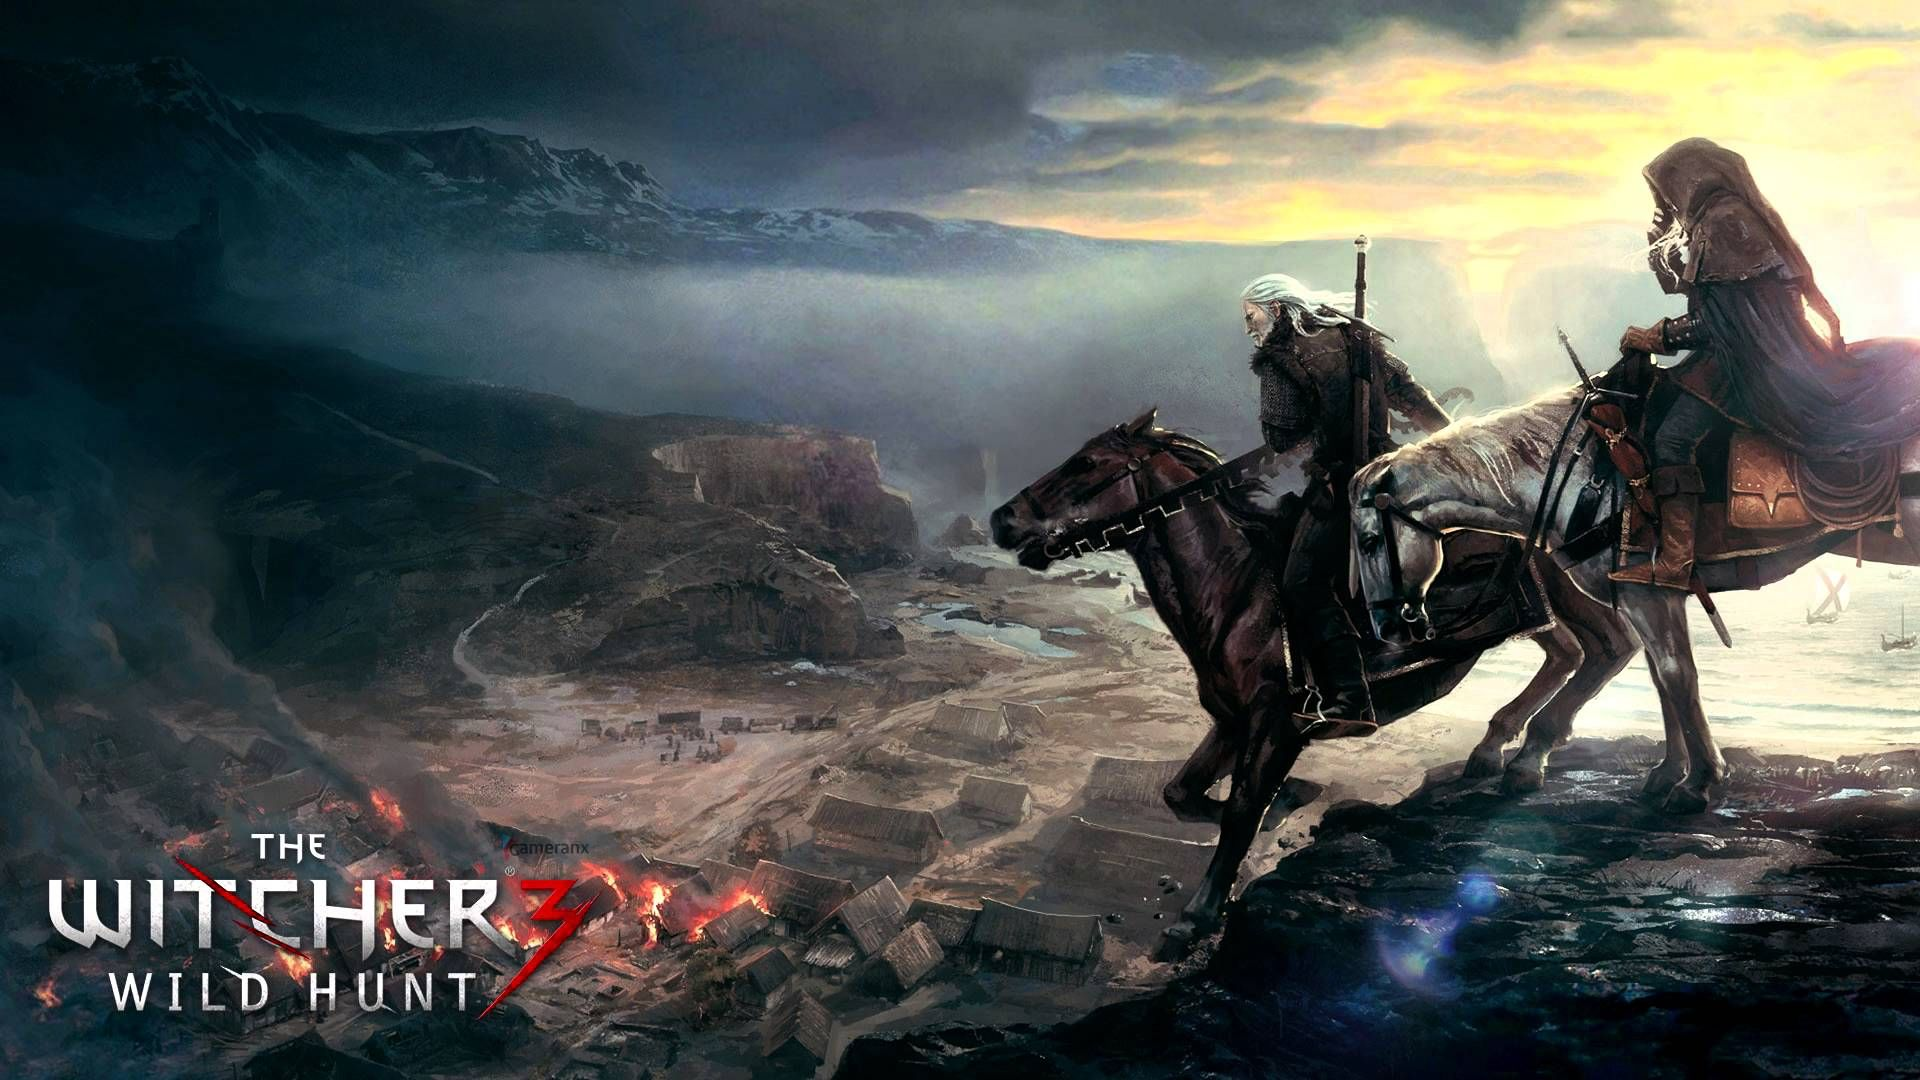 The Witcher 3 Wild Hunt Cloak And Dagger Extended The Witcher